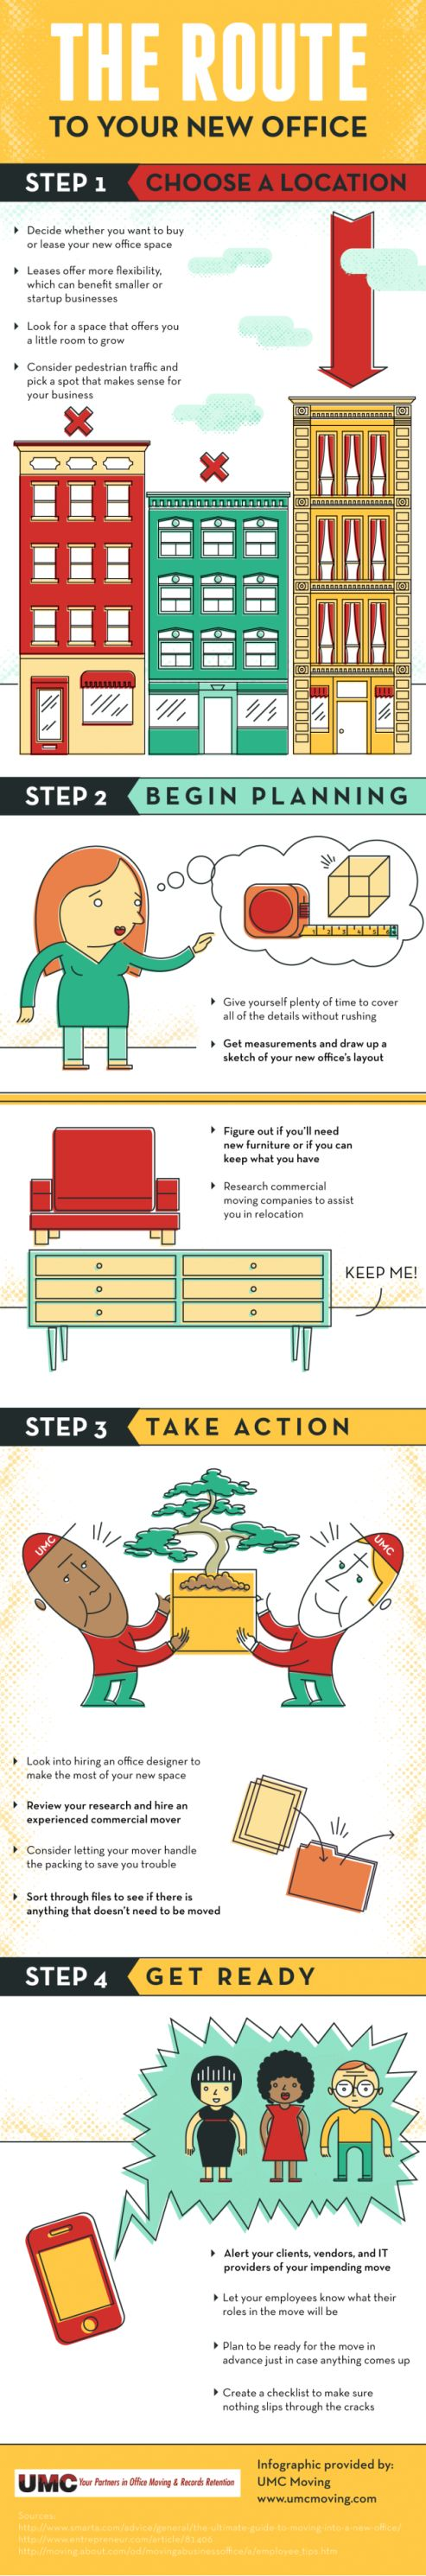 Hiring Movers 20 best moving infographics images on pinterest | infographics